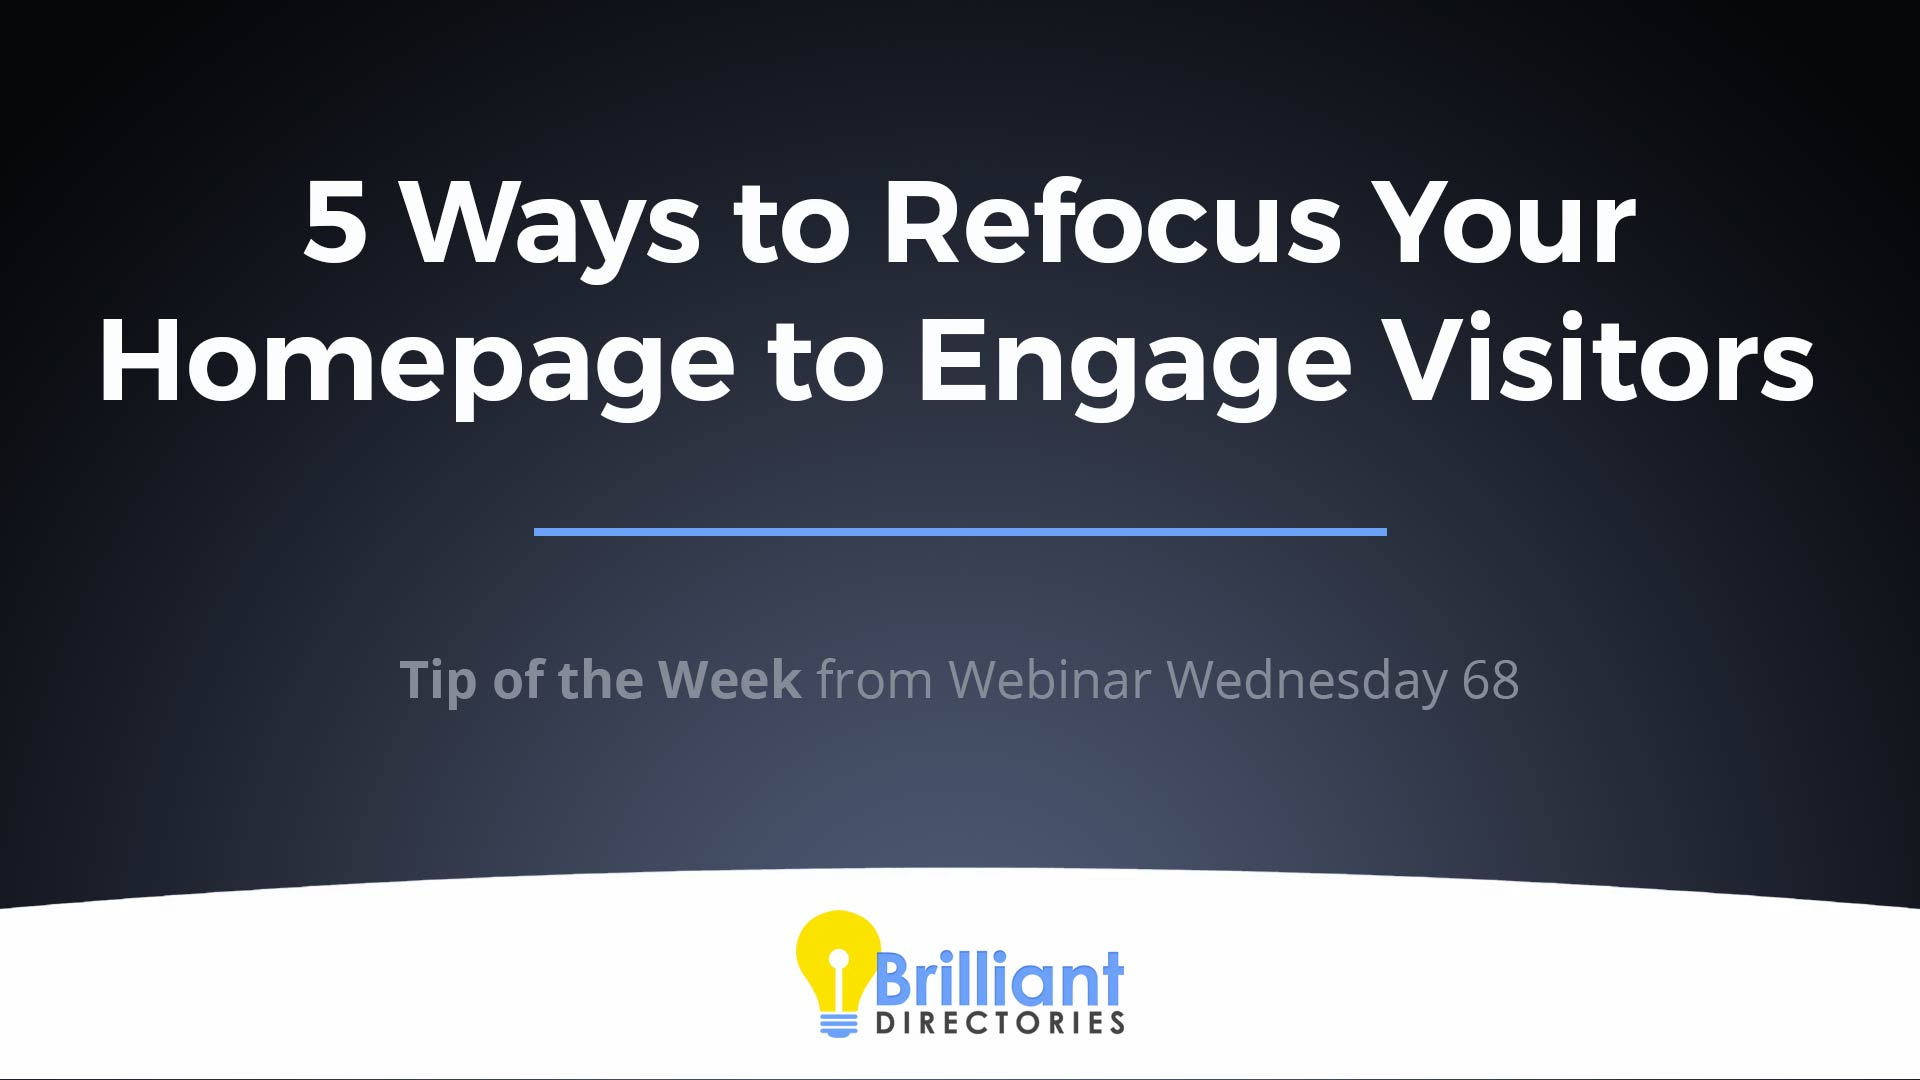 https://www.brilliantdirectories.com/blog/5-ways-to-refocus-your-homepage-to-engage-your-website-visitors